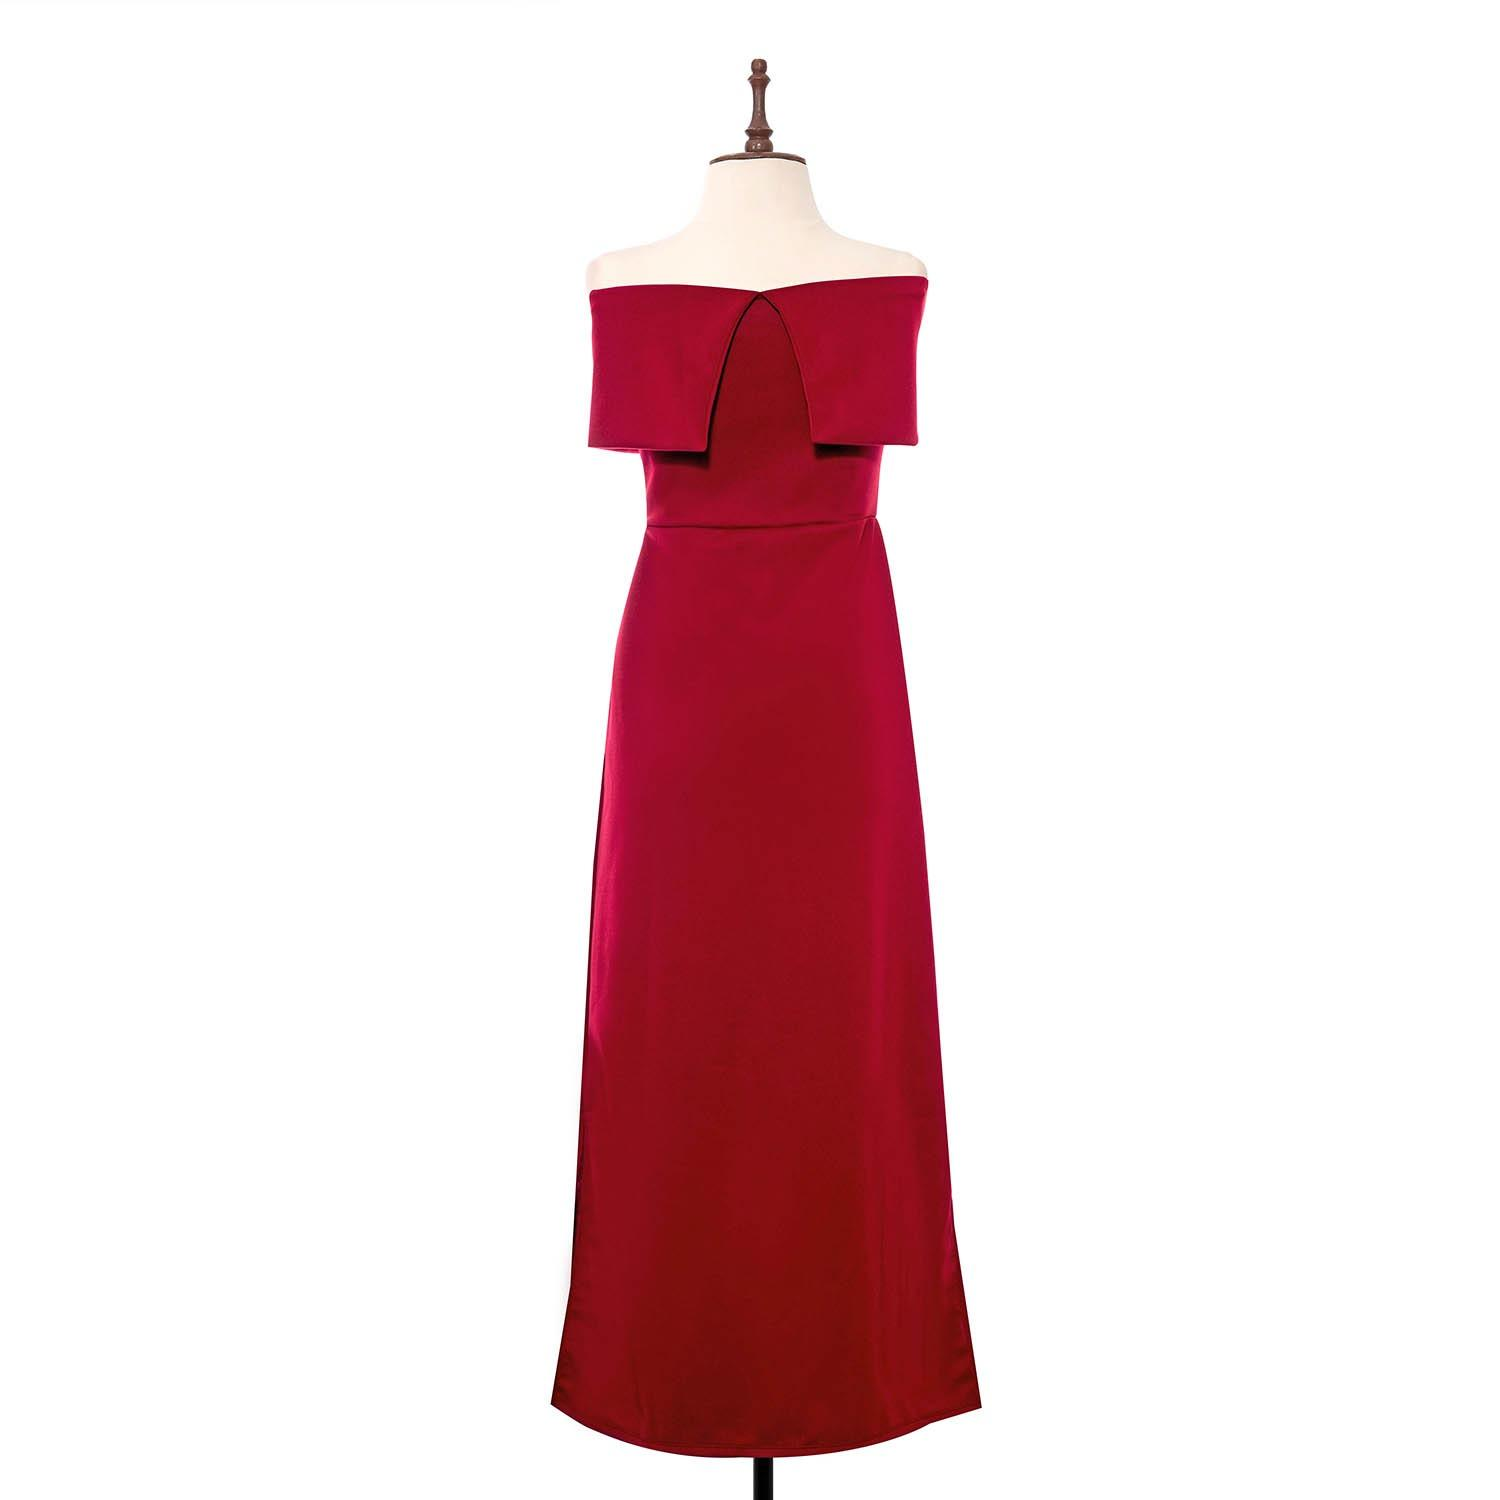 BLACK SHEEP Crepe Maxi Off-Shoulder Dress in Crimson Red